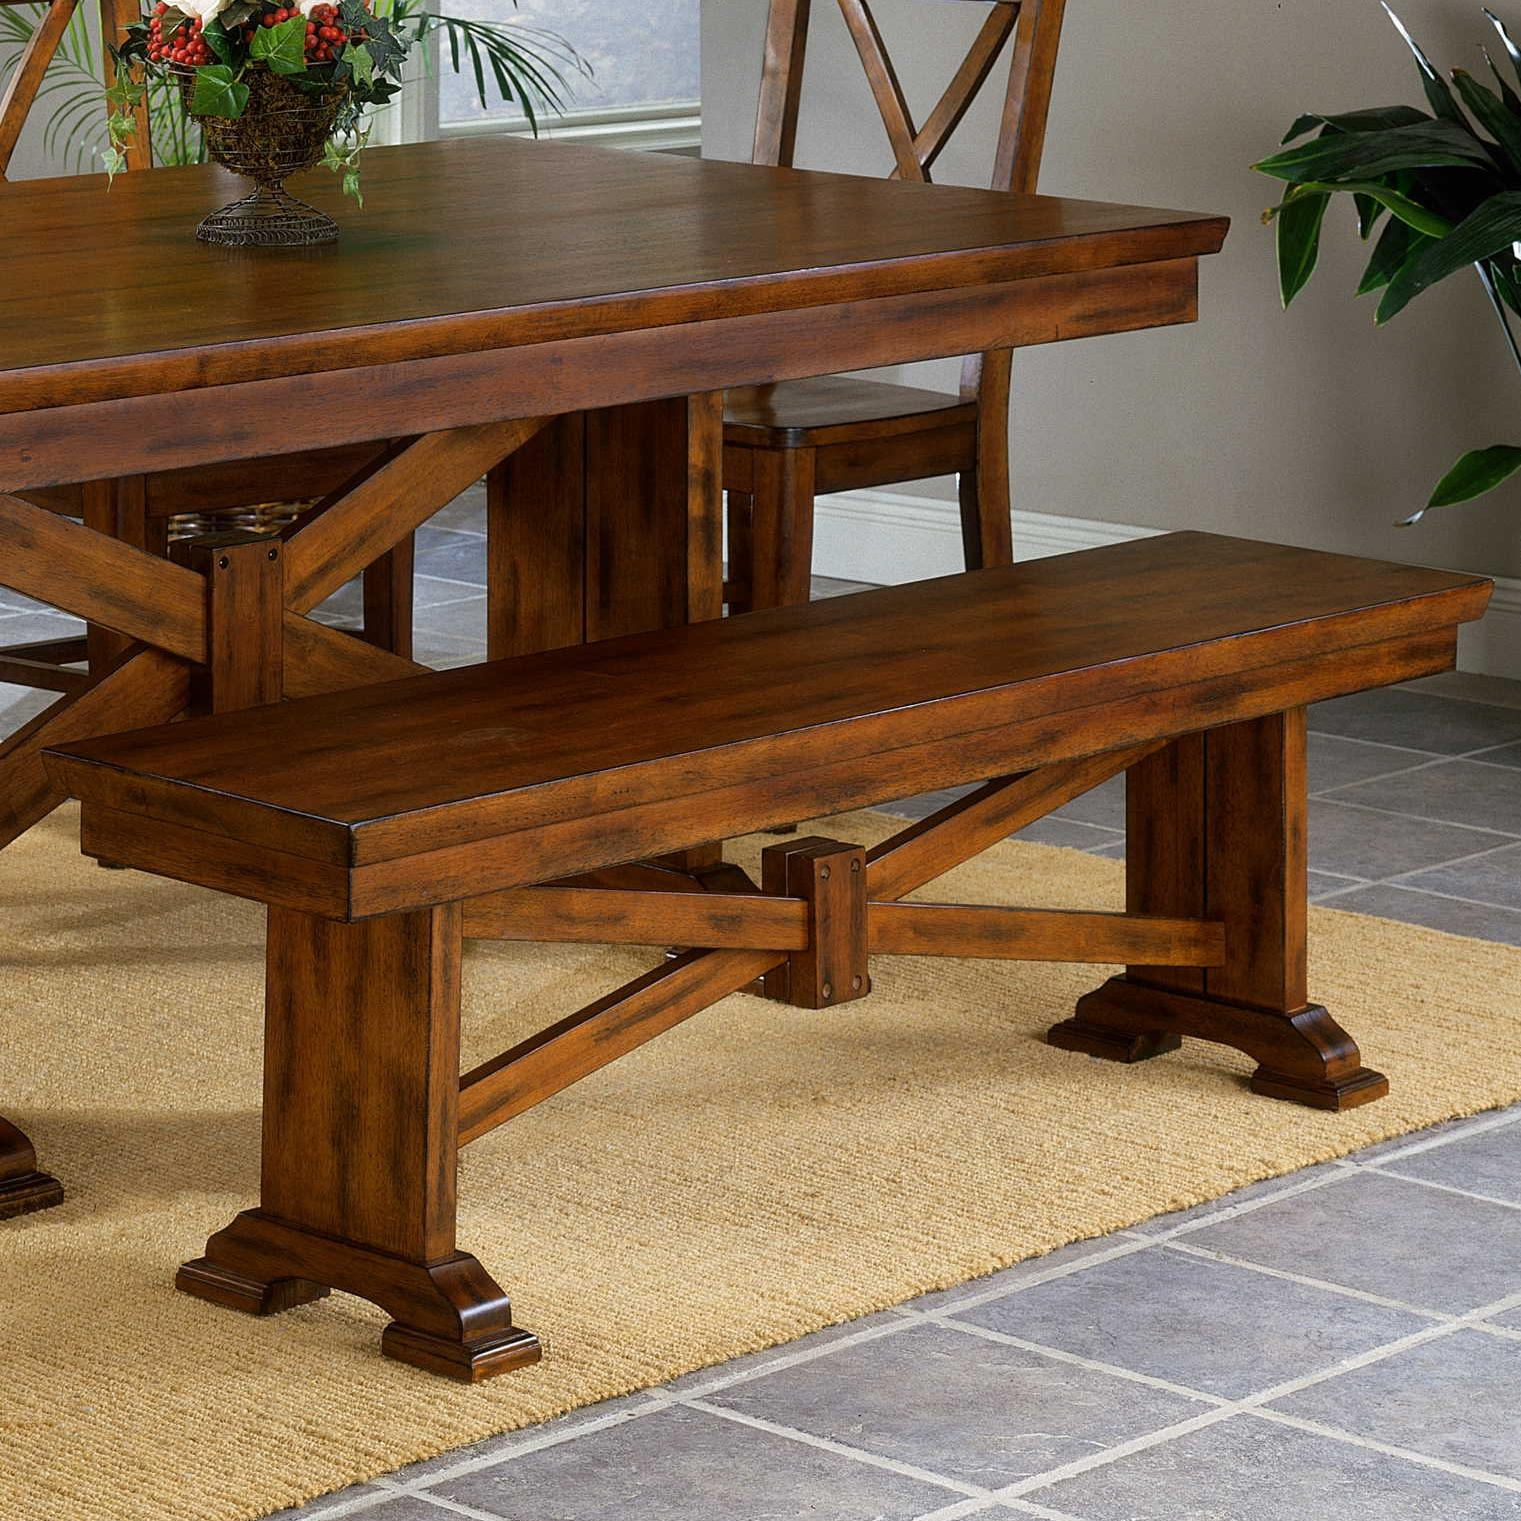 Cornwall Trestle Bench at Sadler's Home Furnishings